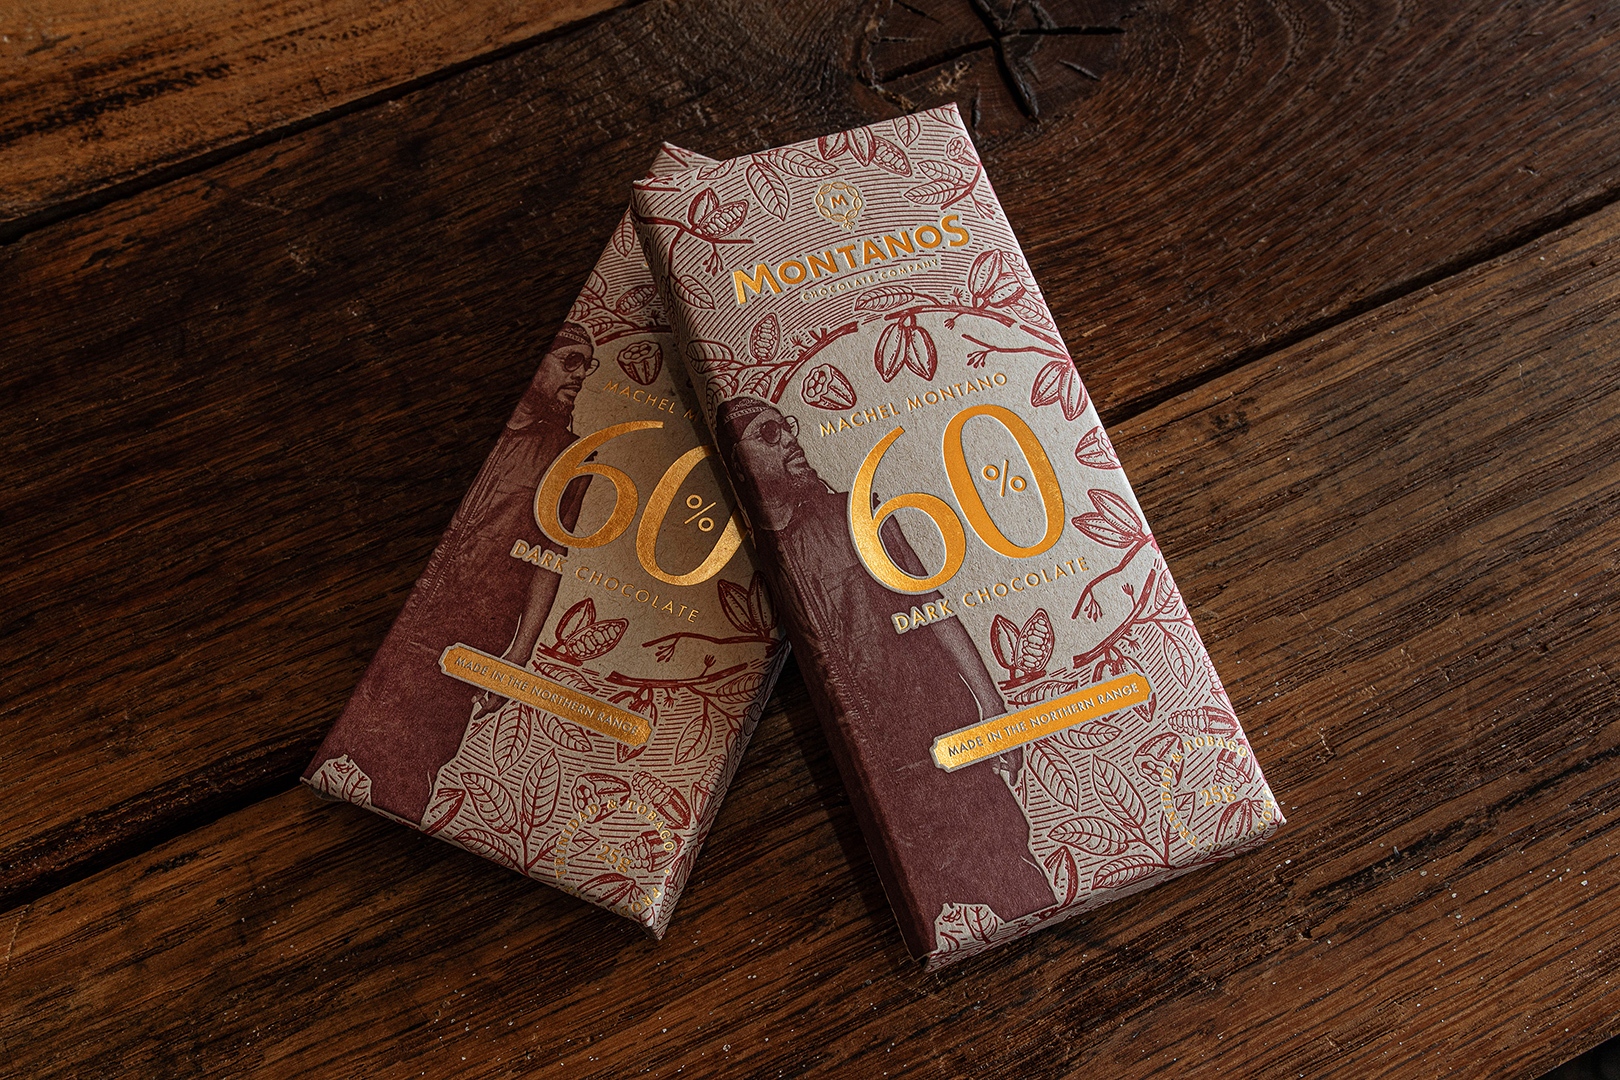 Praktis Designs New Identity and Packaging for Montanos' Chocolate Co.